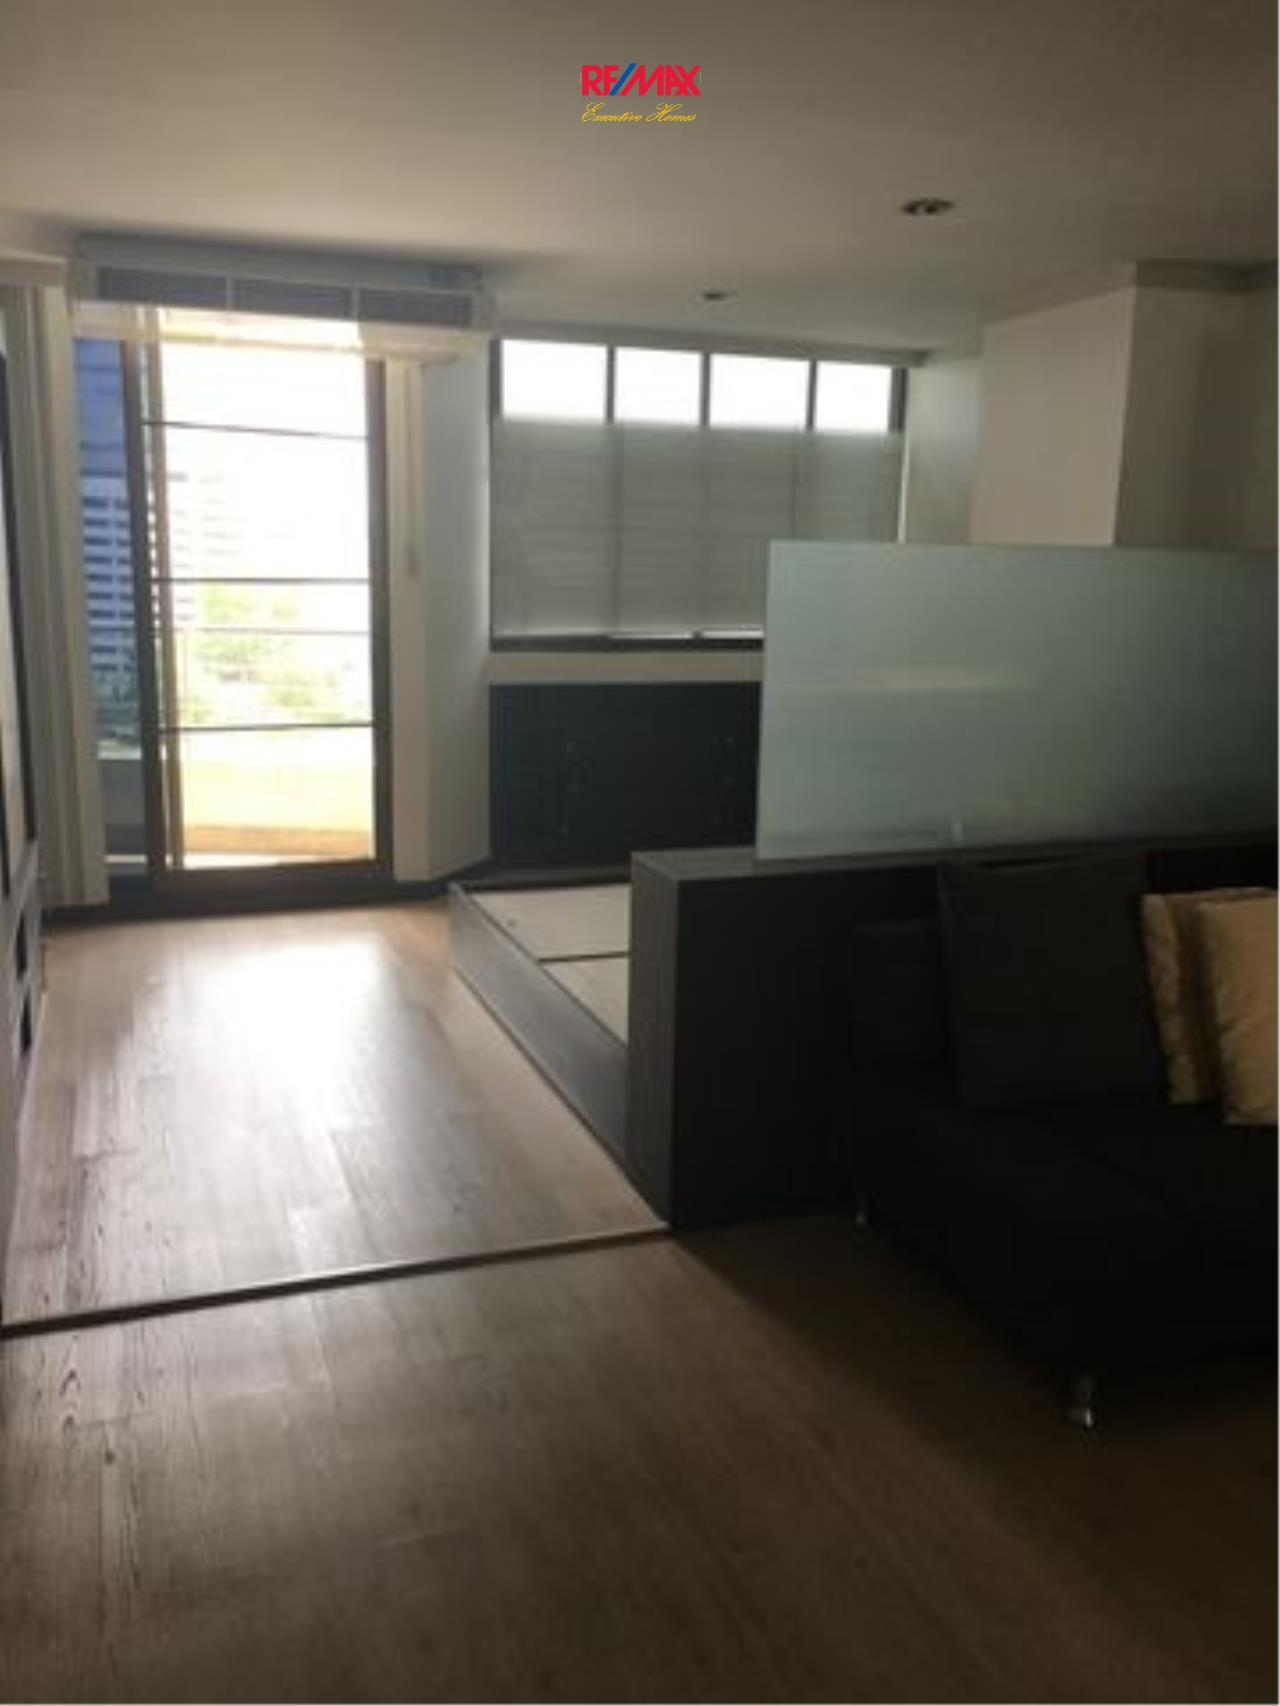 RE/MAX Executive Homes Agency's Spacious 1 Bedroom for Rent Supalai Place 39 3